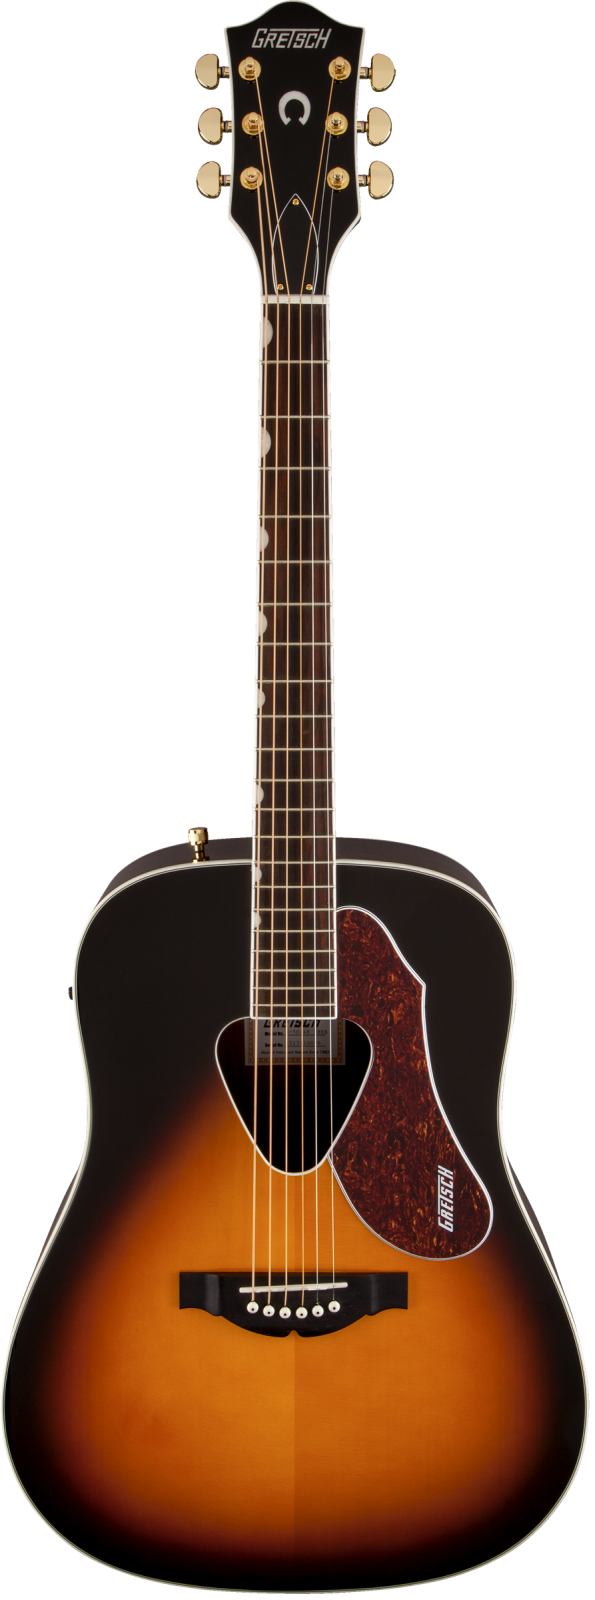 Gretsch G5024E Rancher Acoustic-Electric